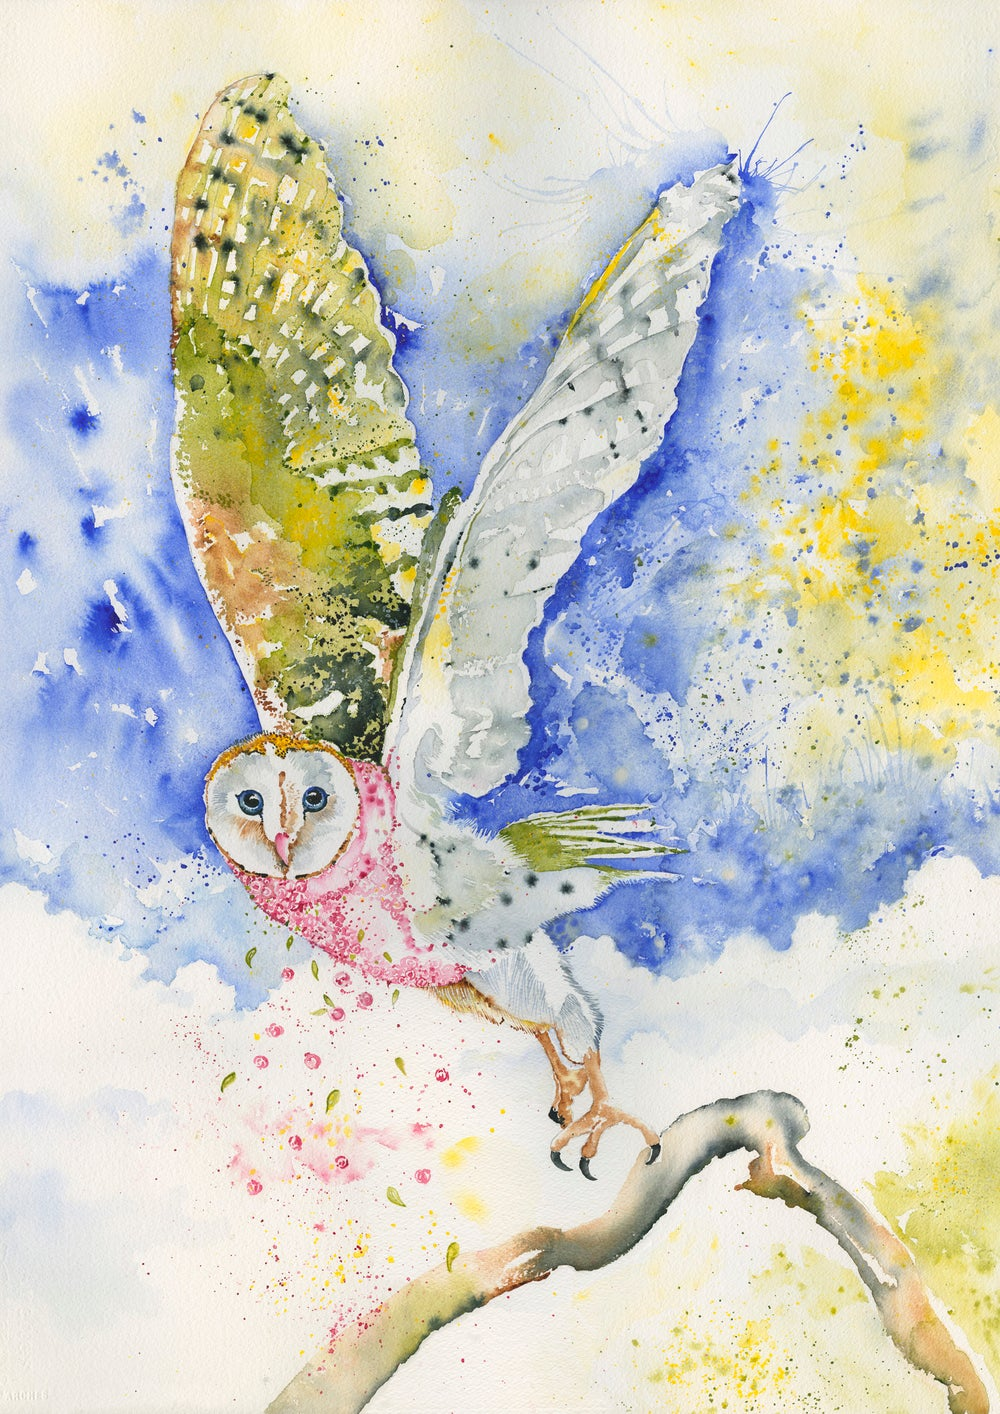 Image of Cannella, the beautiful wise Owl